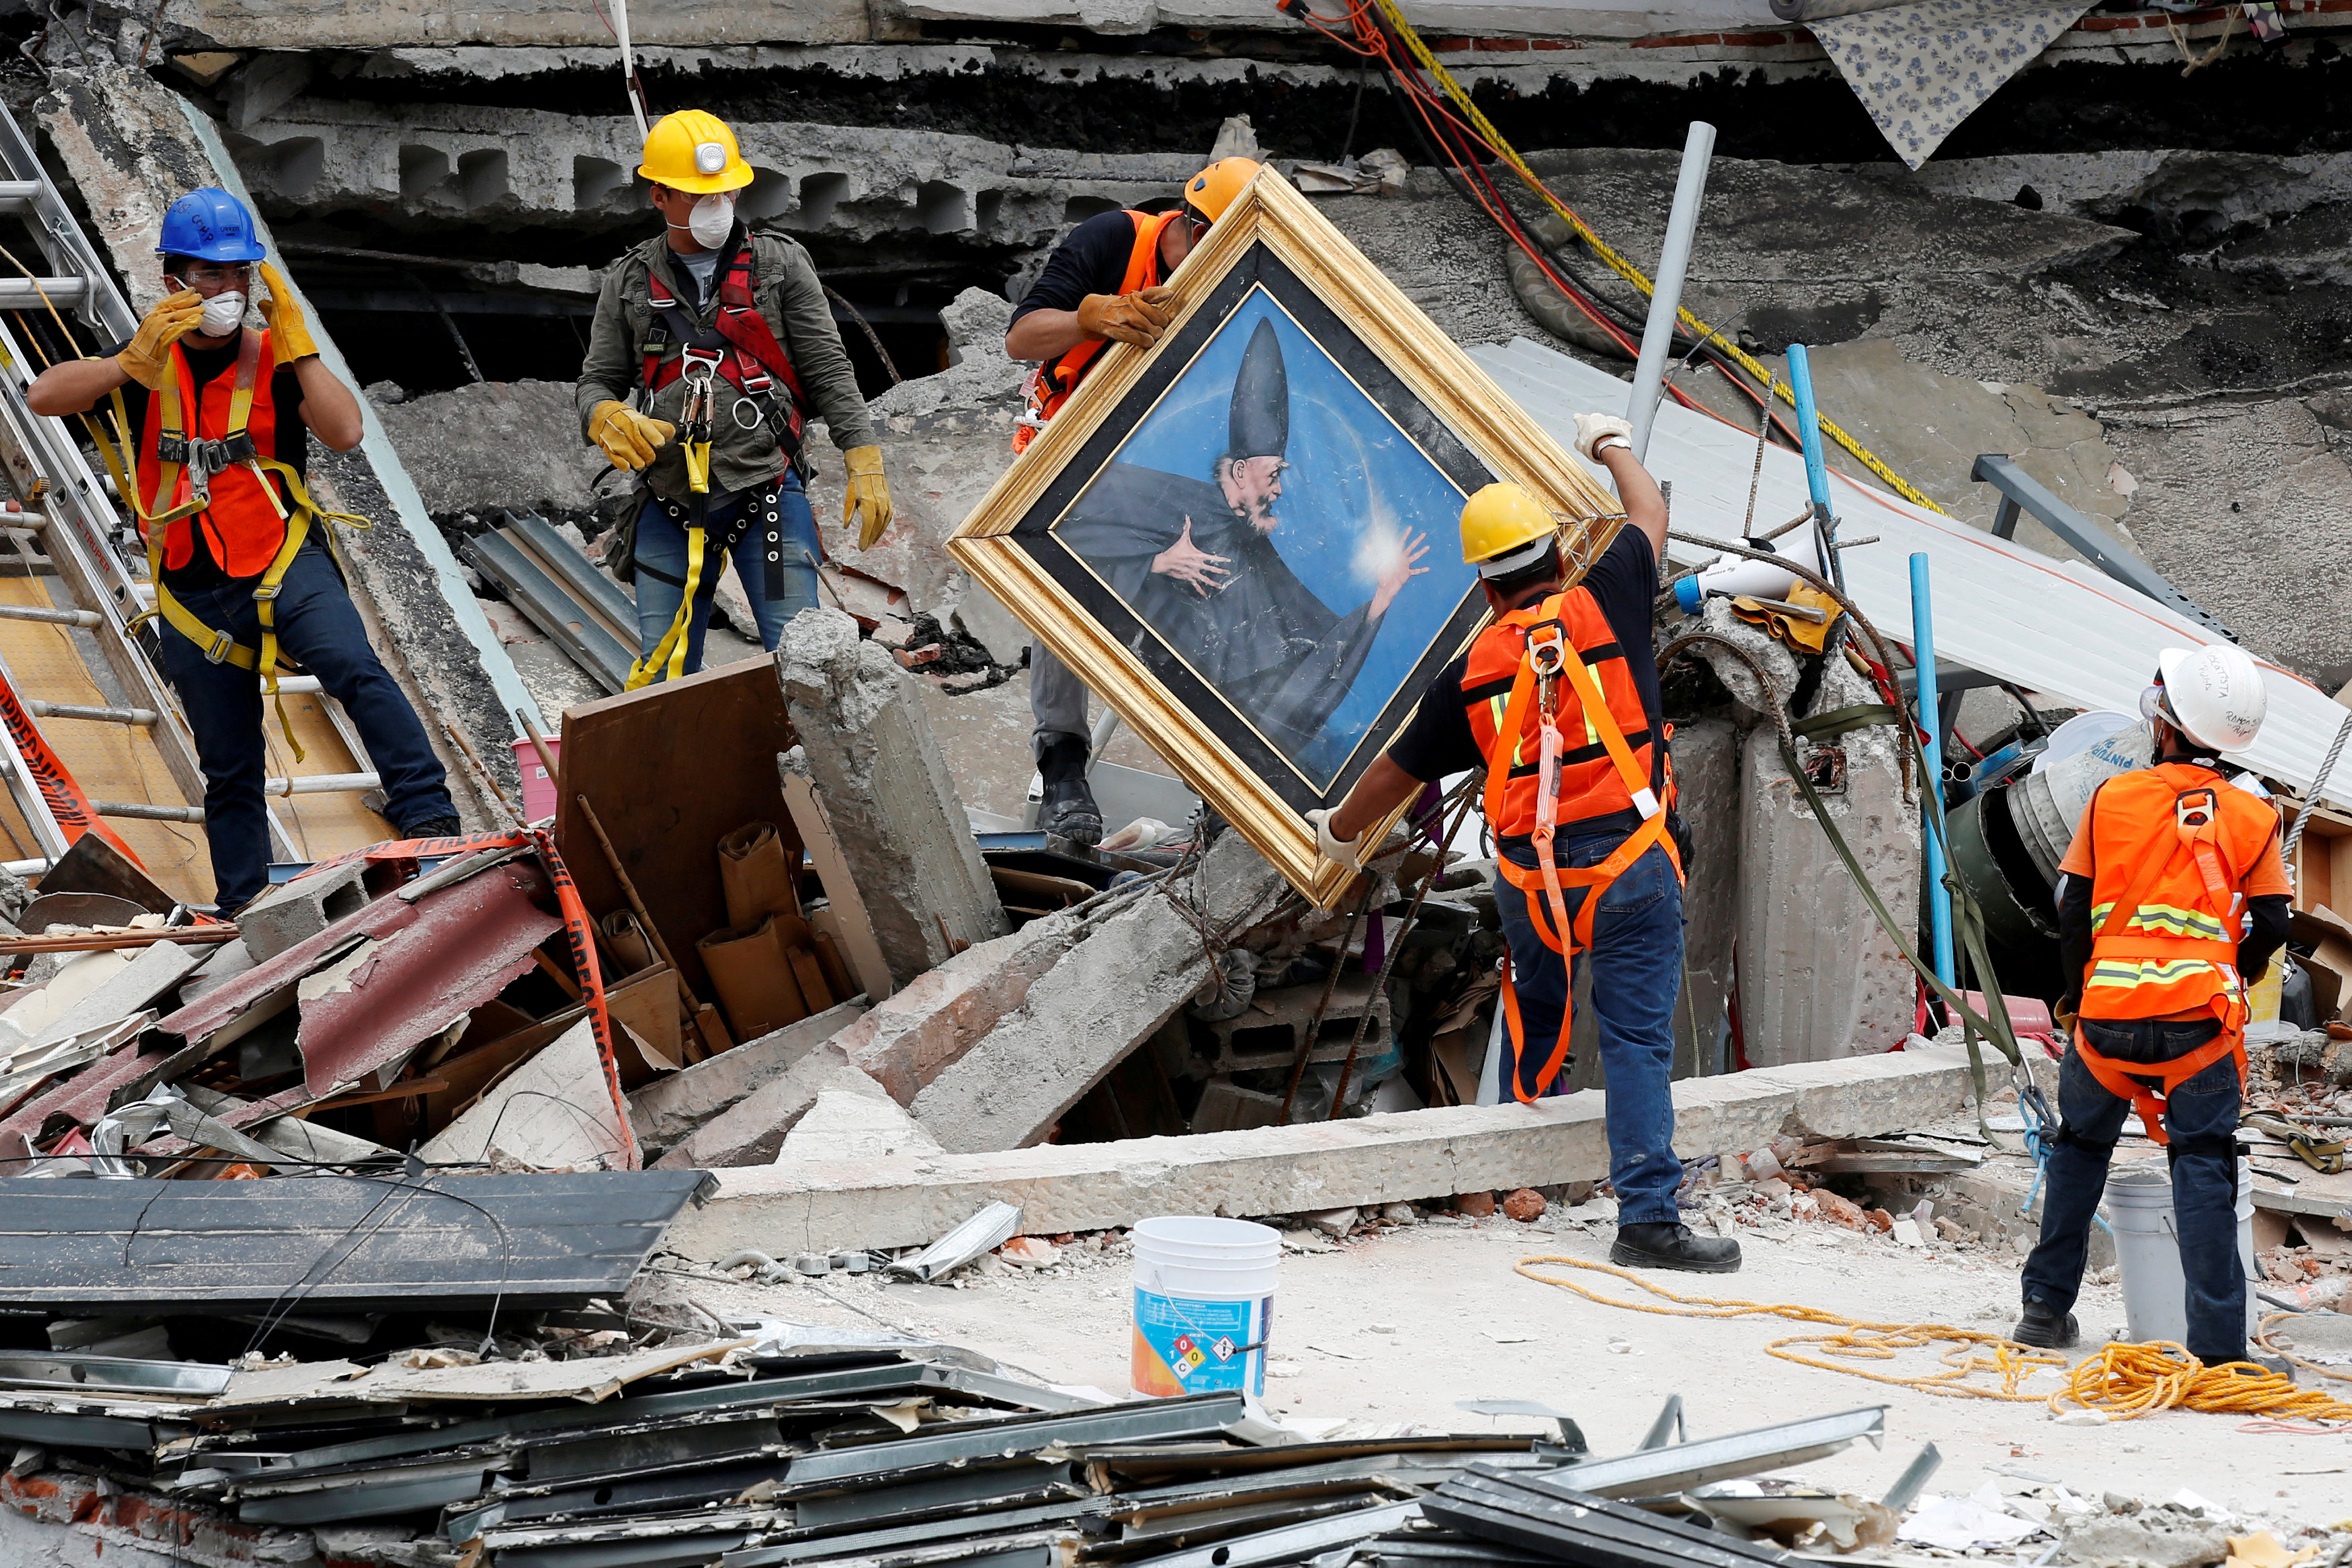 Mexican and international rescue teams remove a painting as they search for survivors in a collapsed building after an earthquake, at Roma neighborhood in Mexico City.